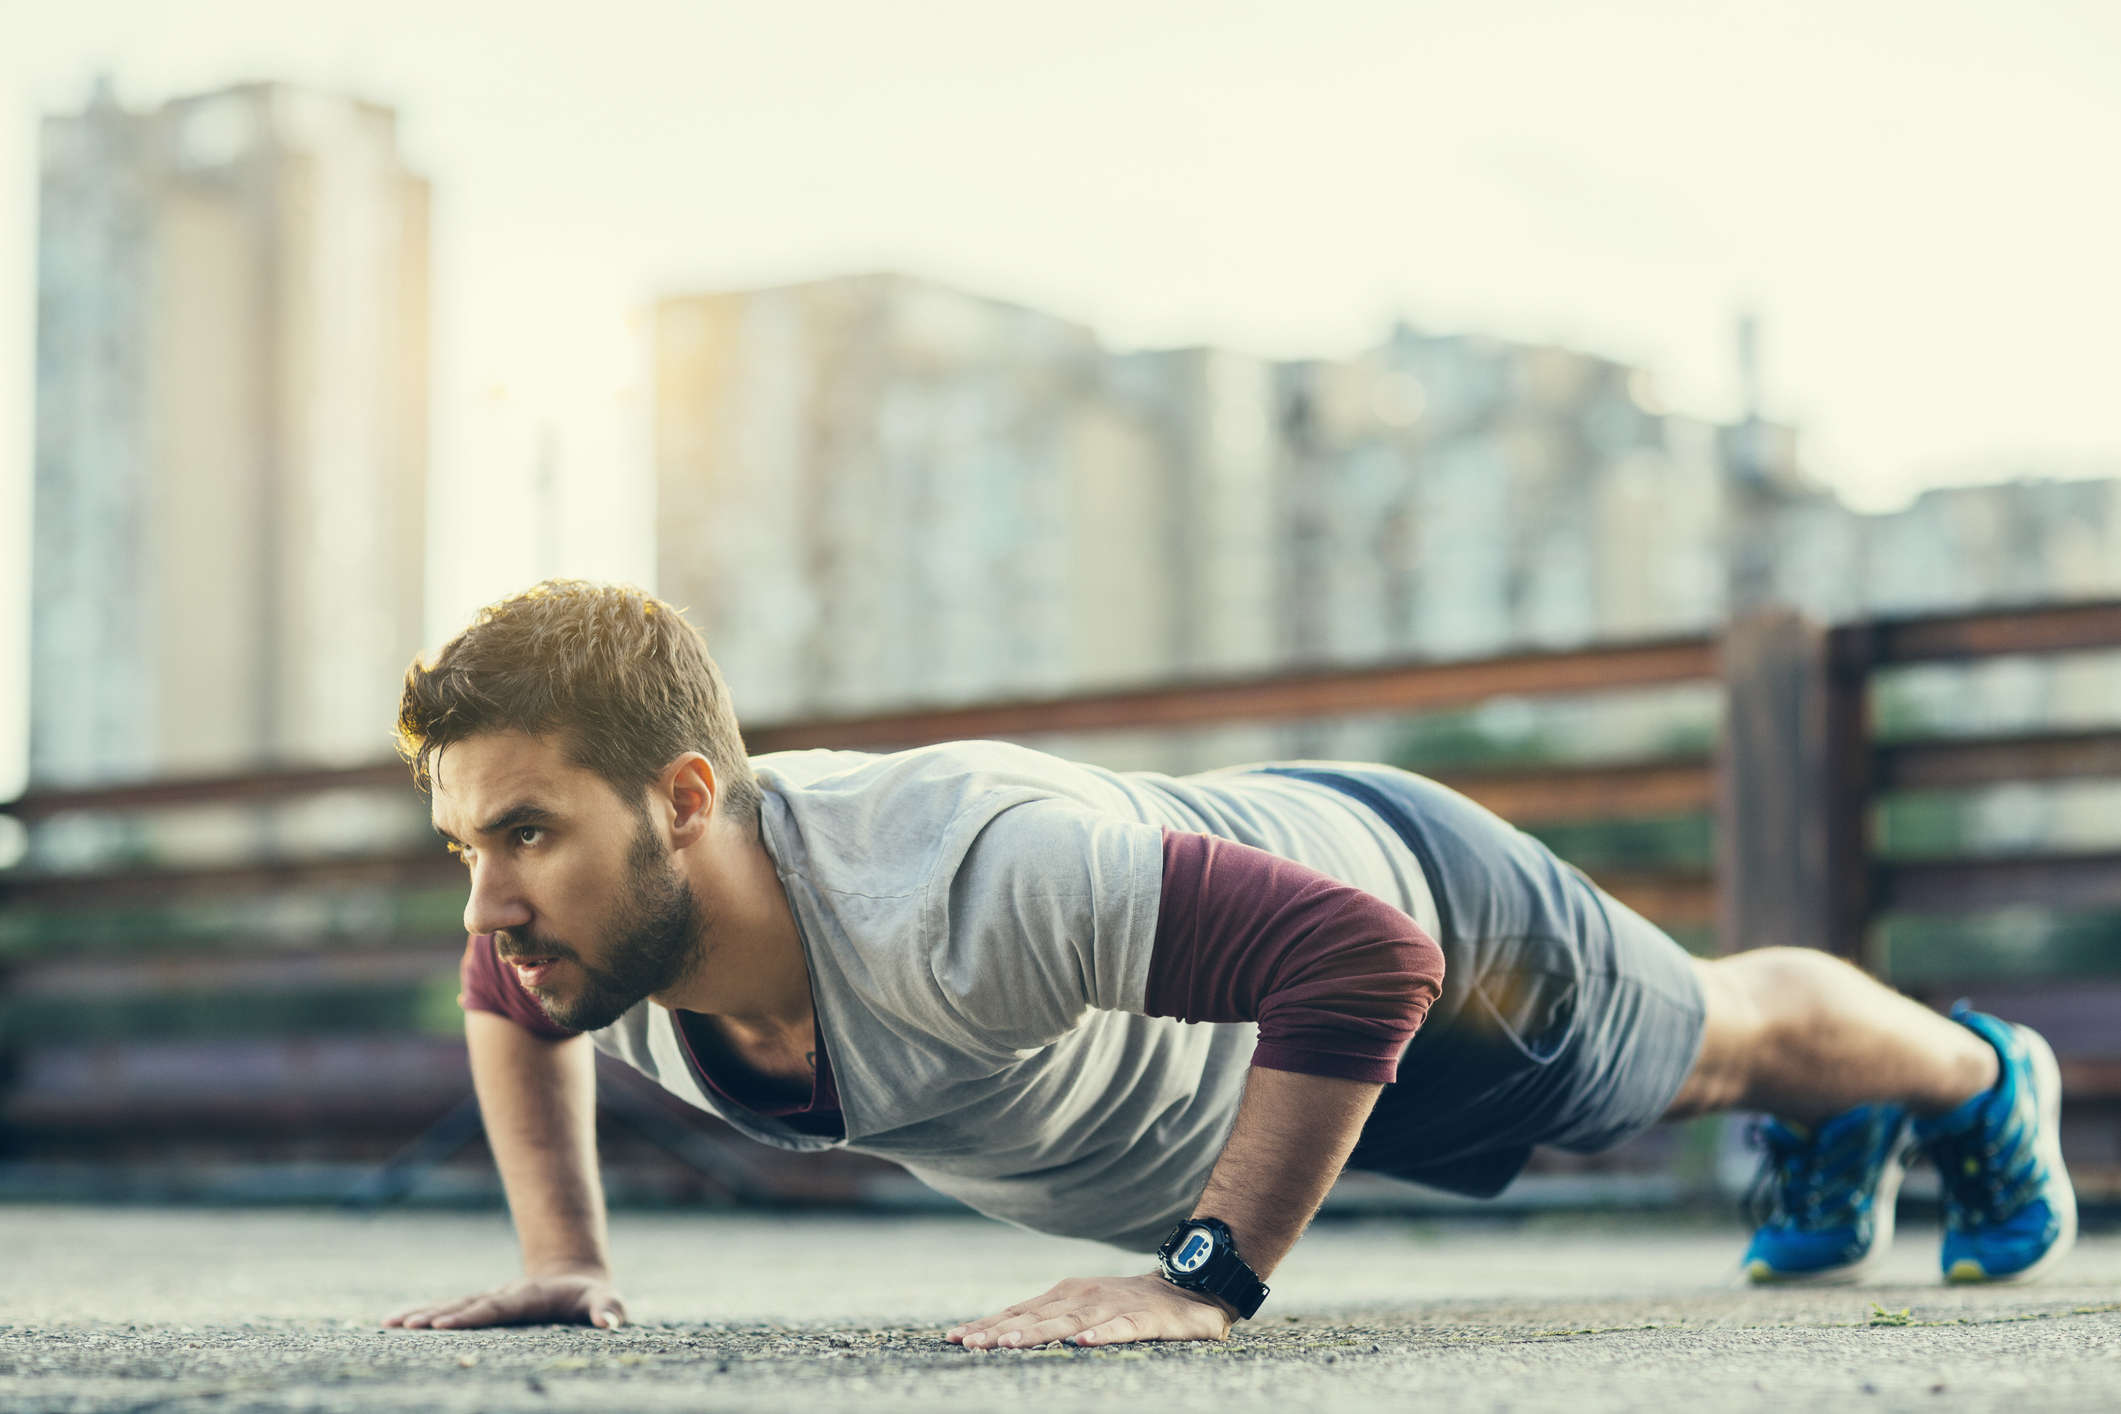 Pull yourself down to the floor slowly, focusing on squeezing your shoulder blades together and stretching your chest.